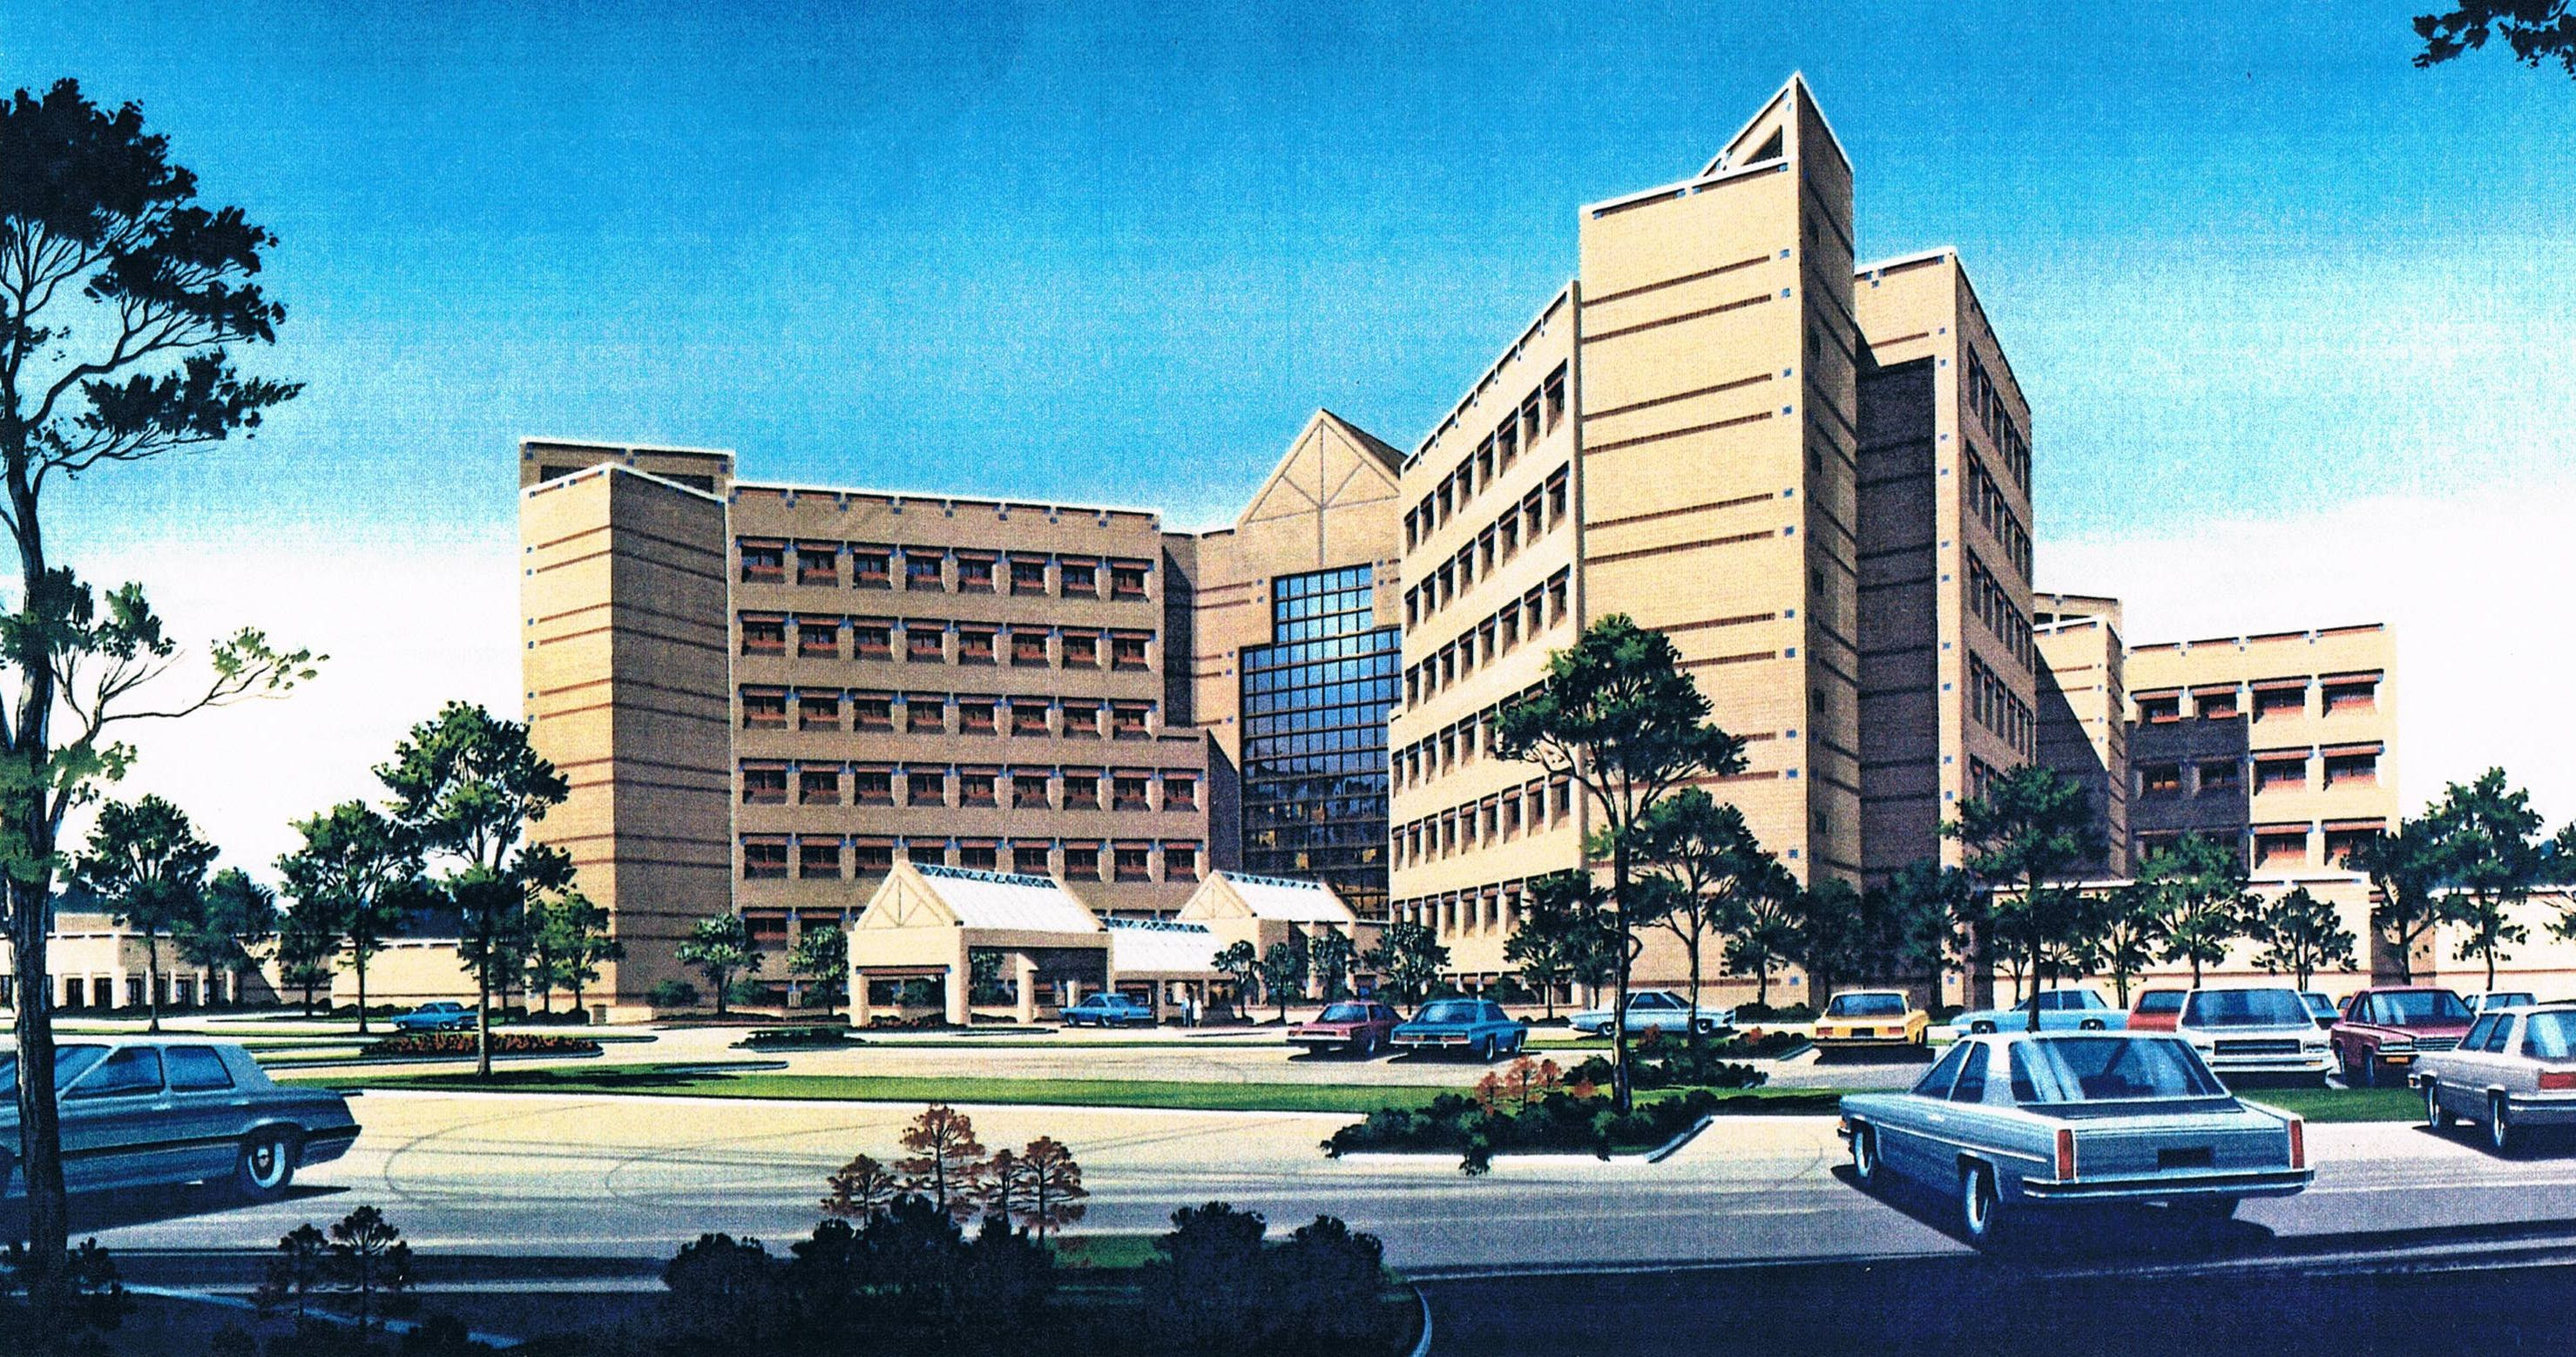 Brooke Army Medical Center Bamc Replacement Hospital